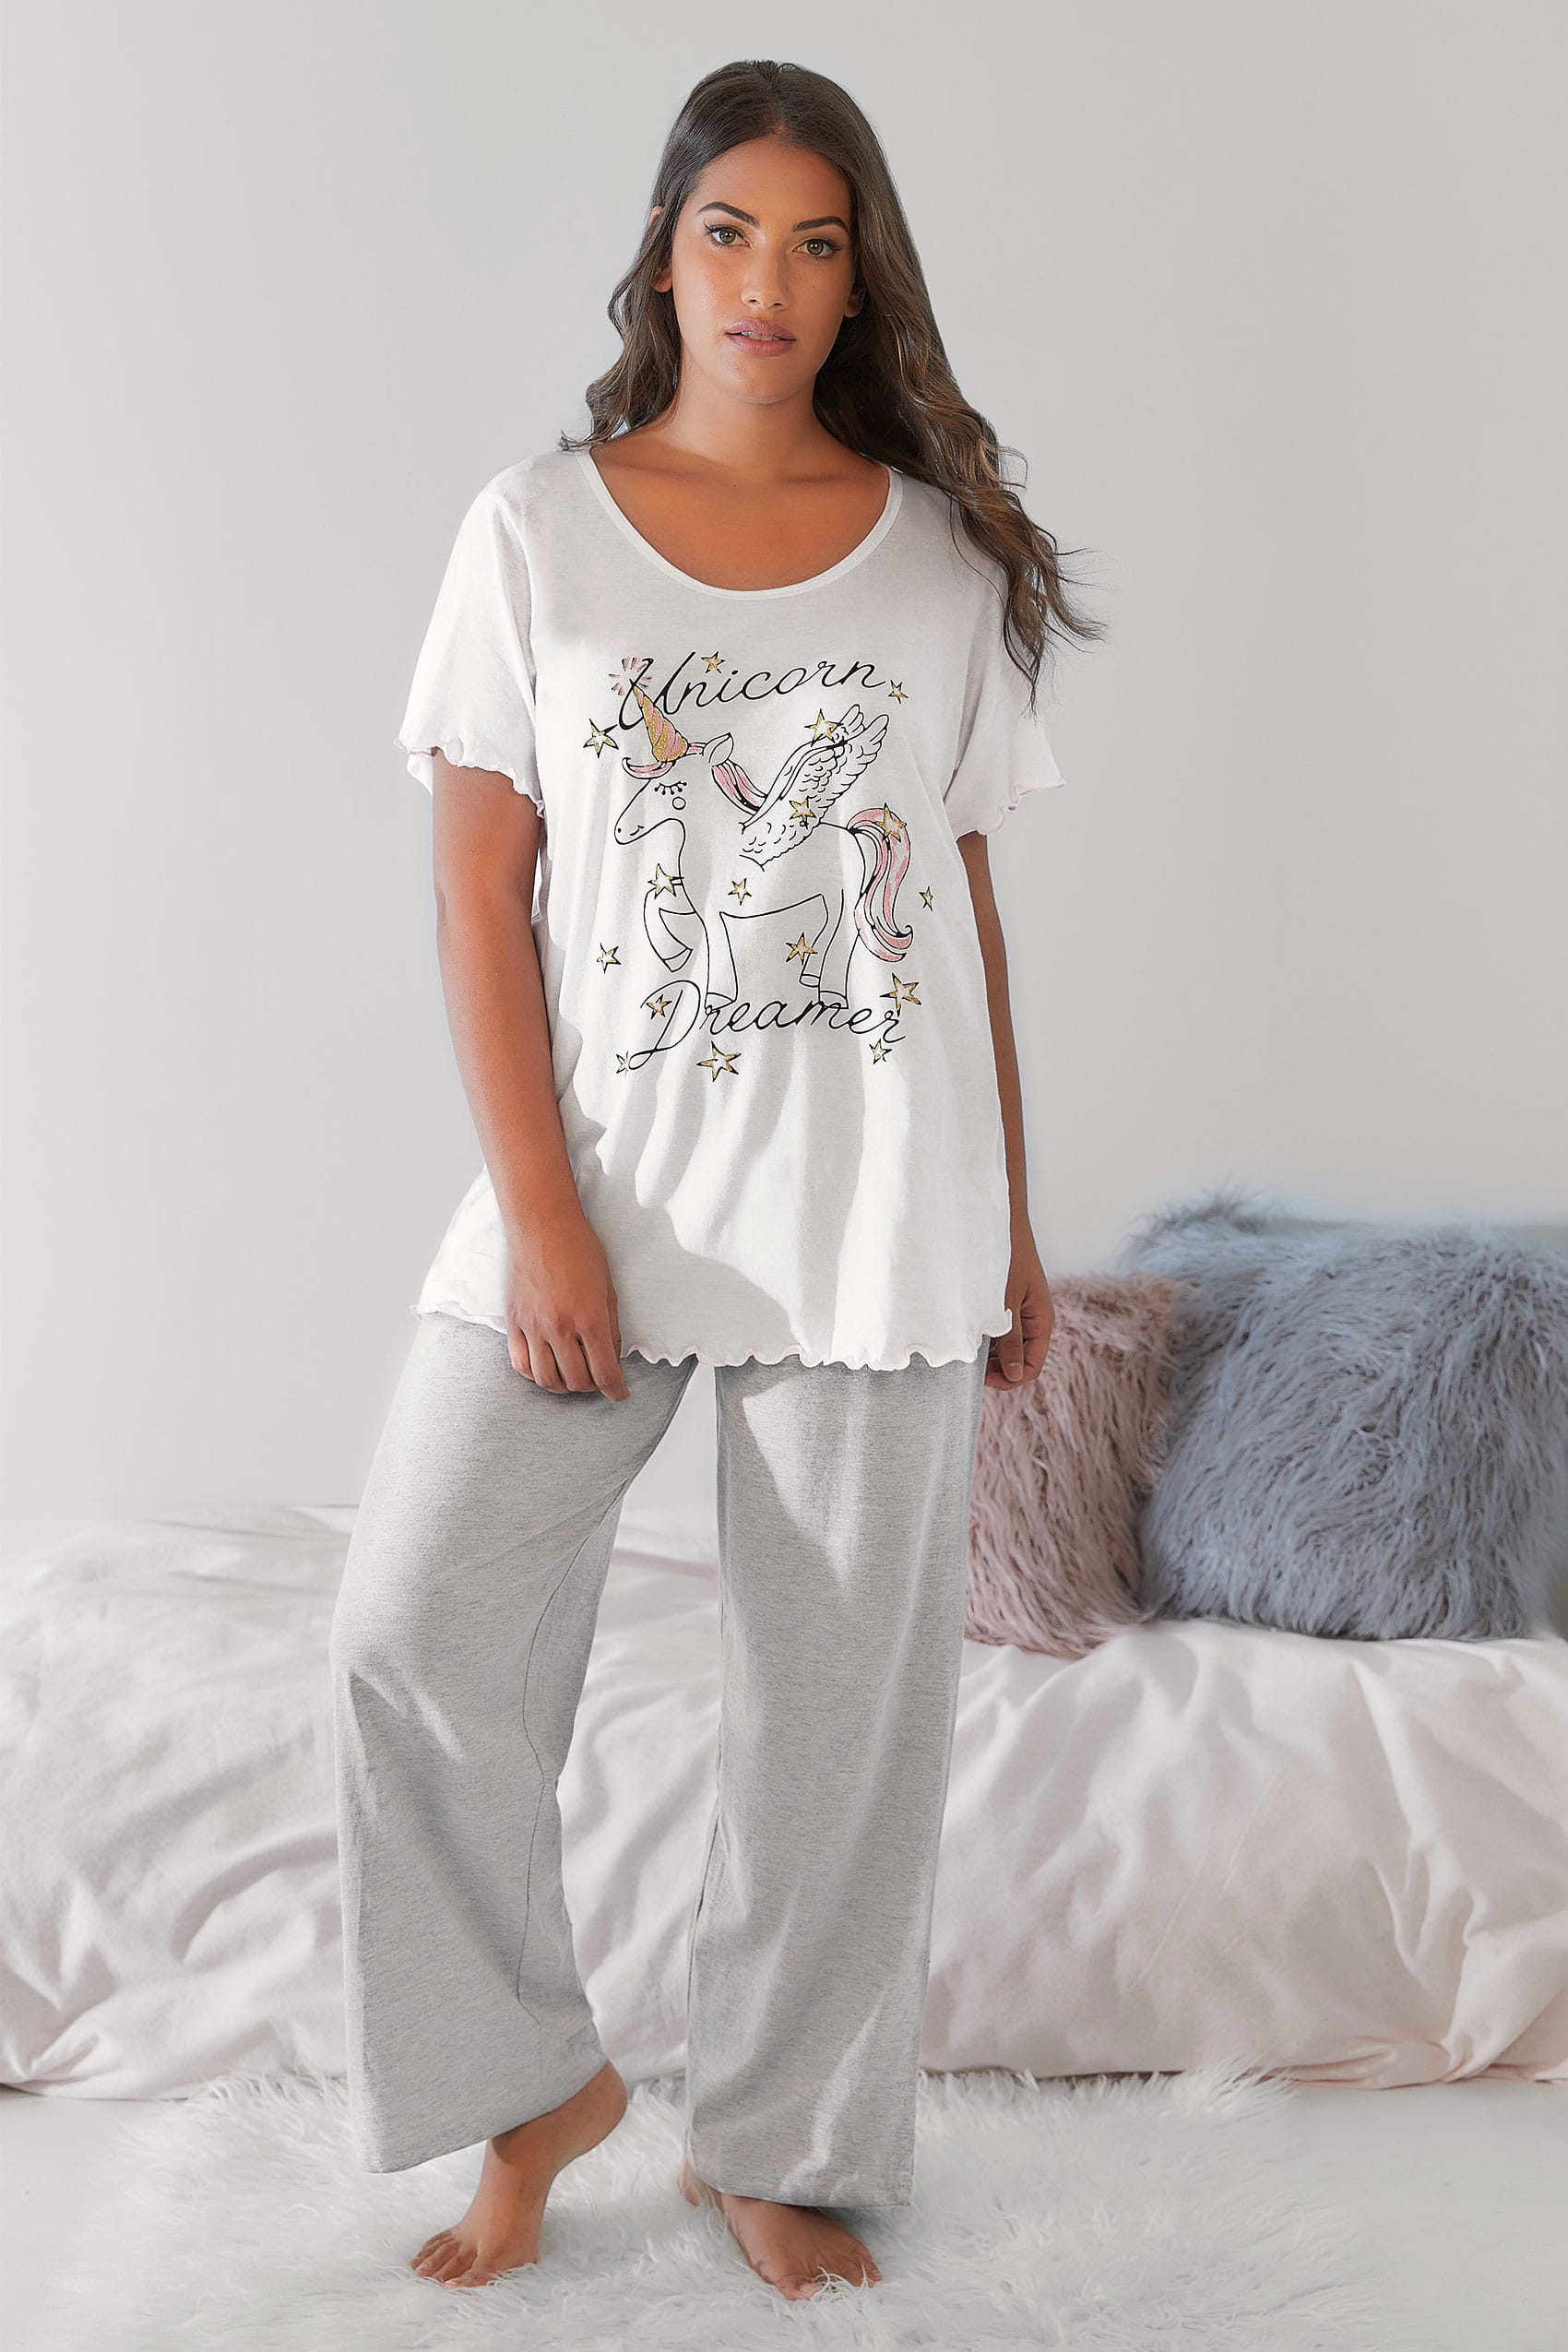 white  u0026 39 unicorn dreamer u0026 39  glittery pyjama top  plus size 16